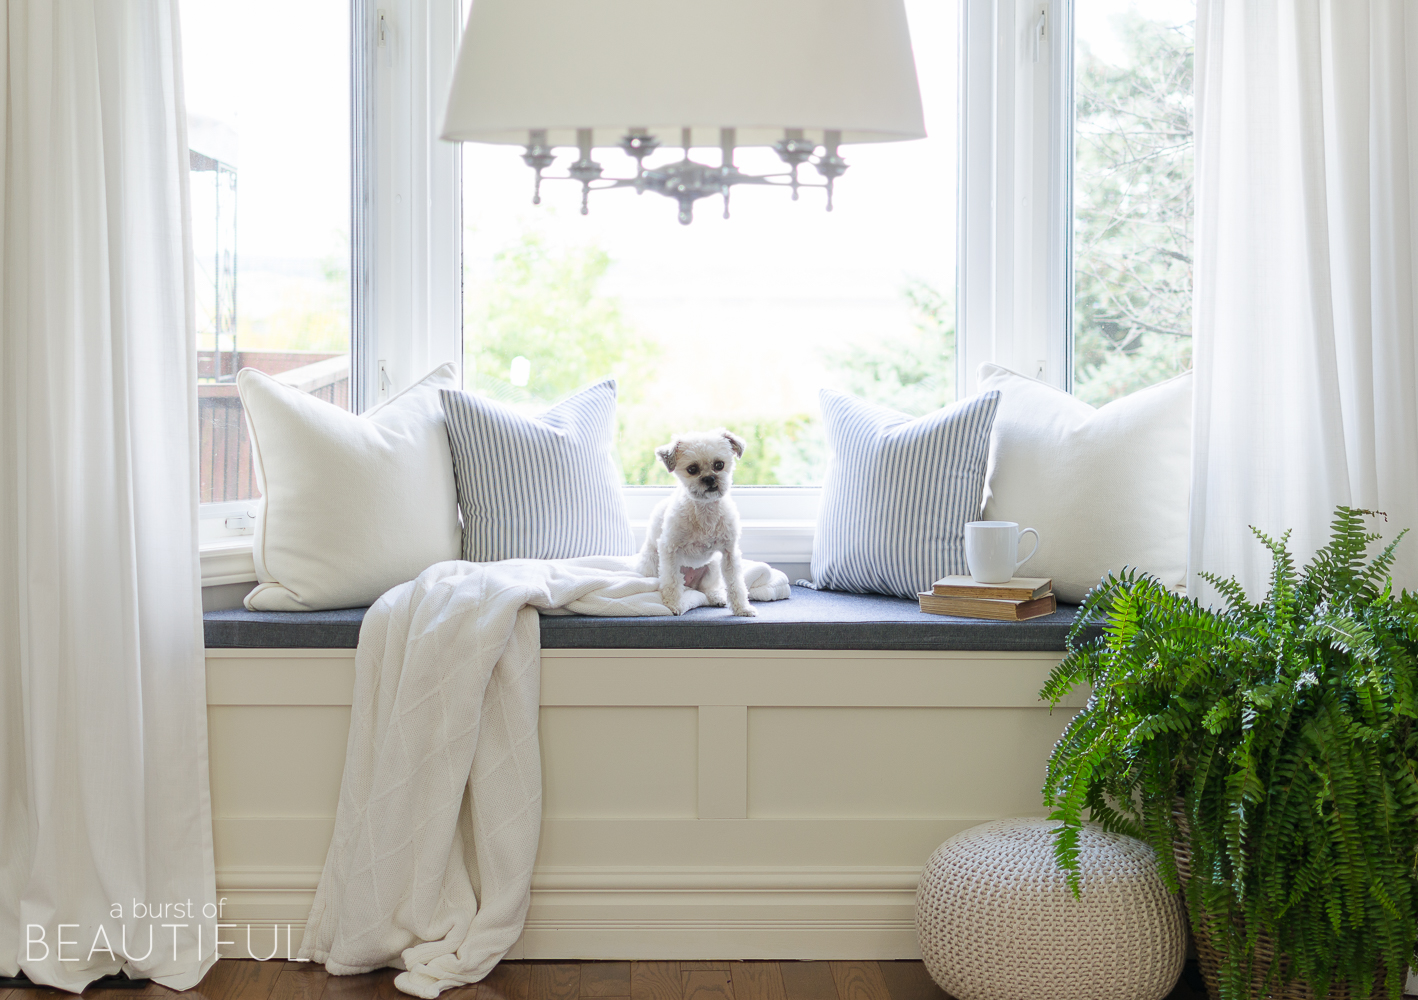 How to build a window bench in a bay window.